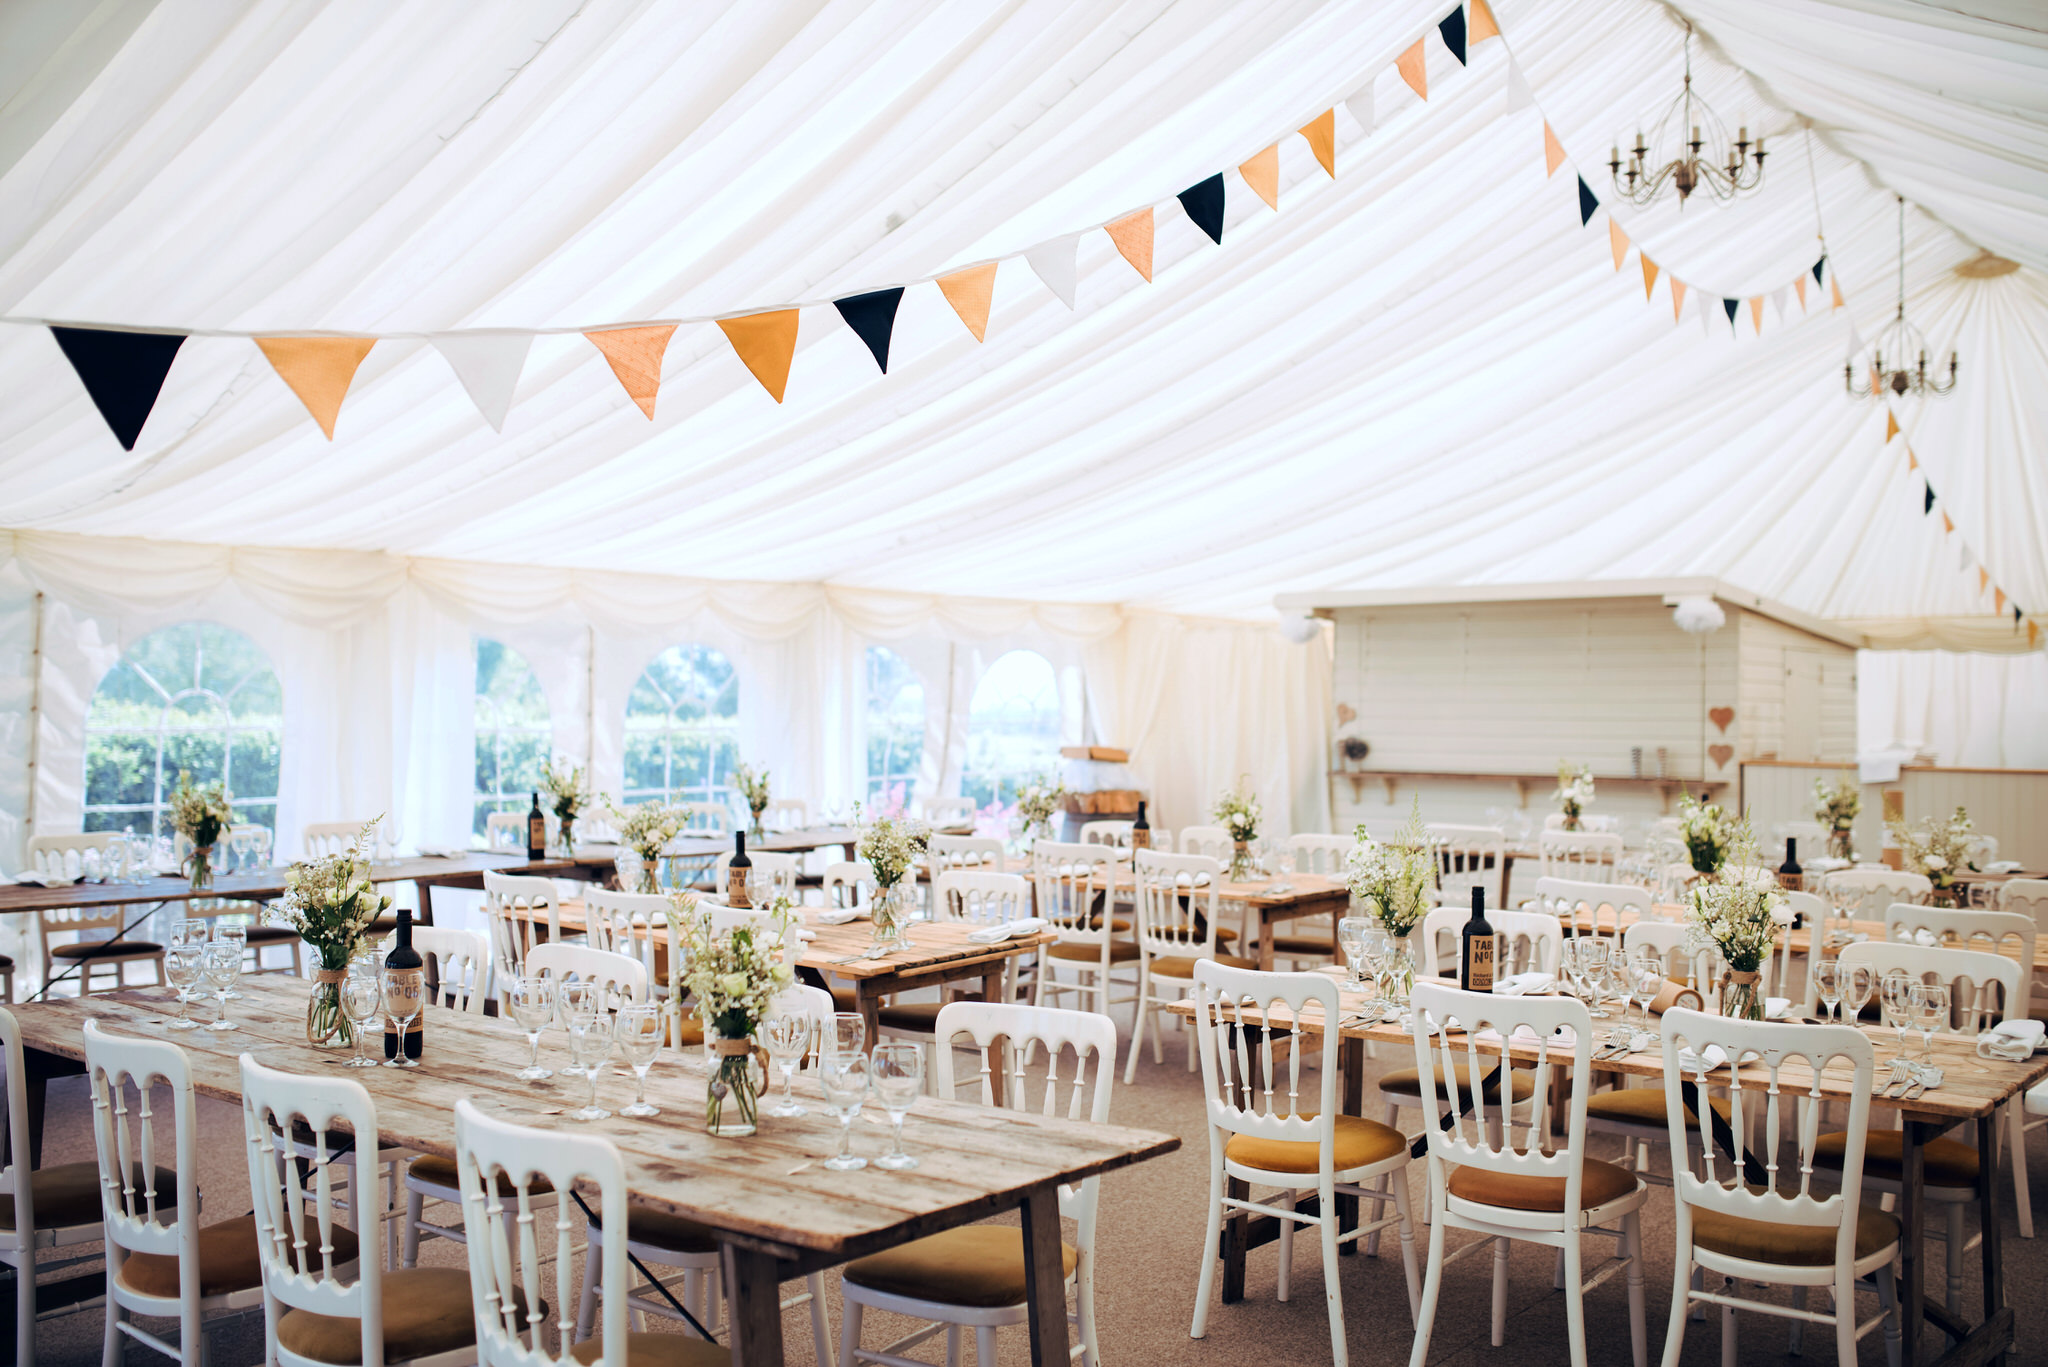 Huntstile organic farm wedding breakfast